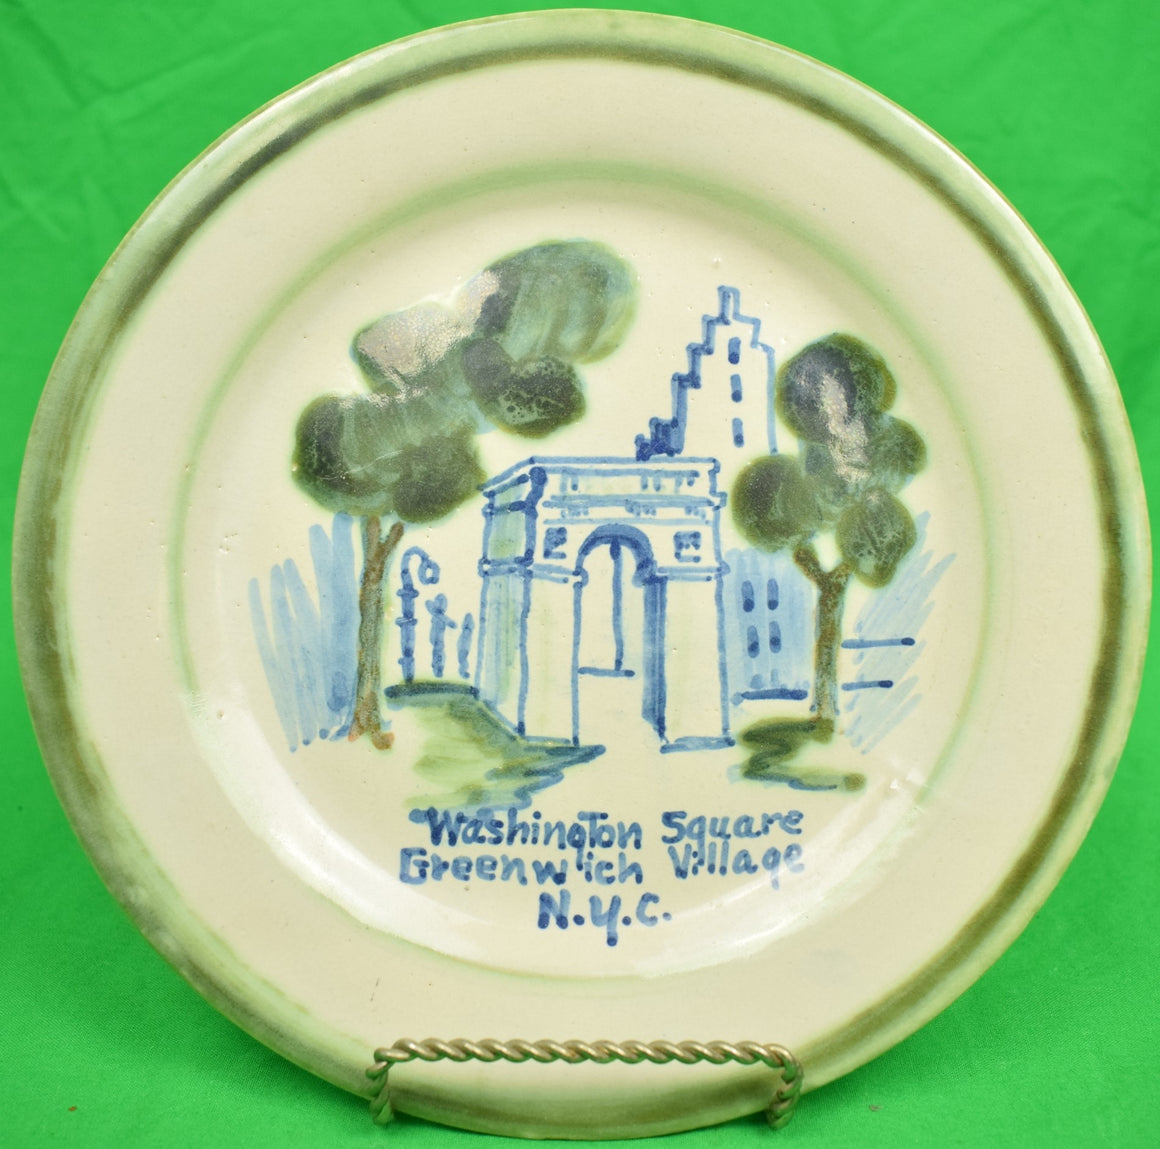 Washington Square Greenwich Village N.Y.C. Plate by John Taylor Ceramics